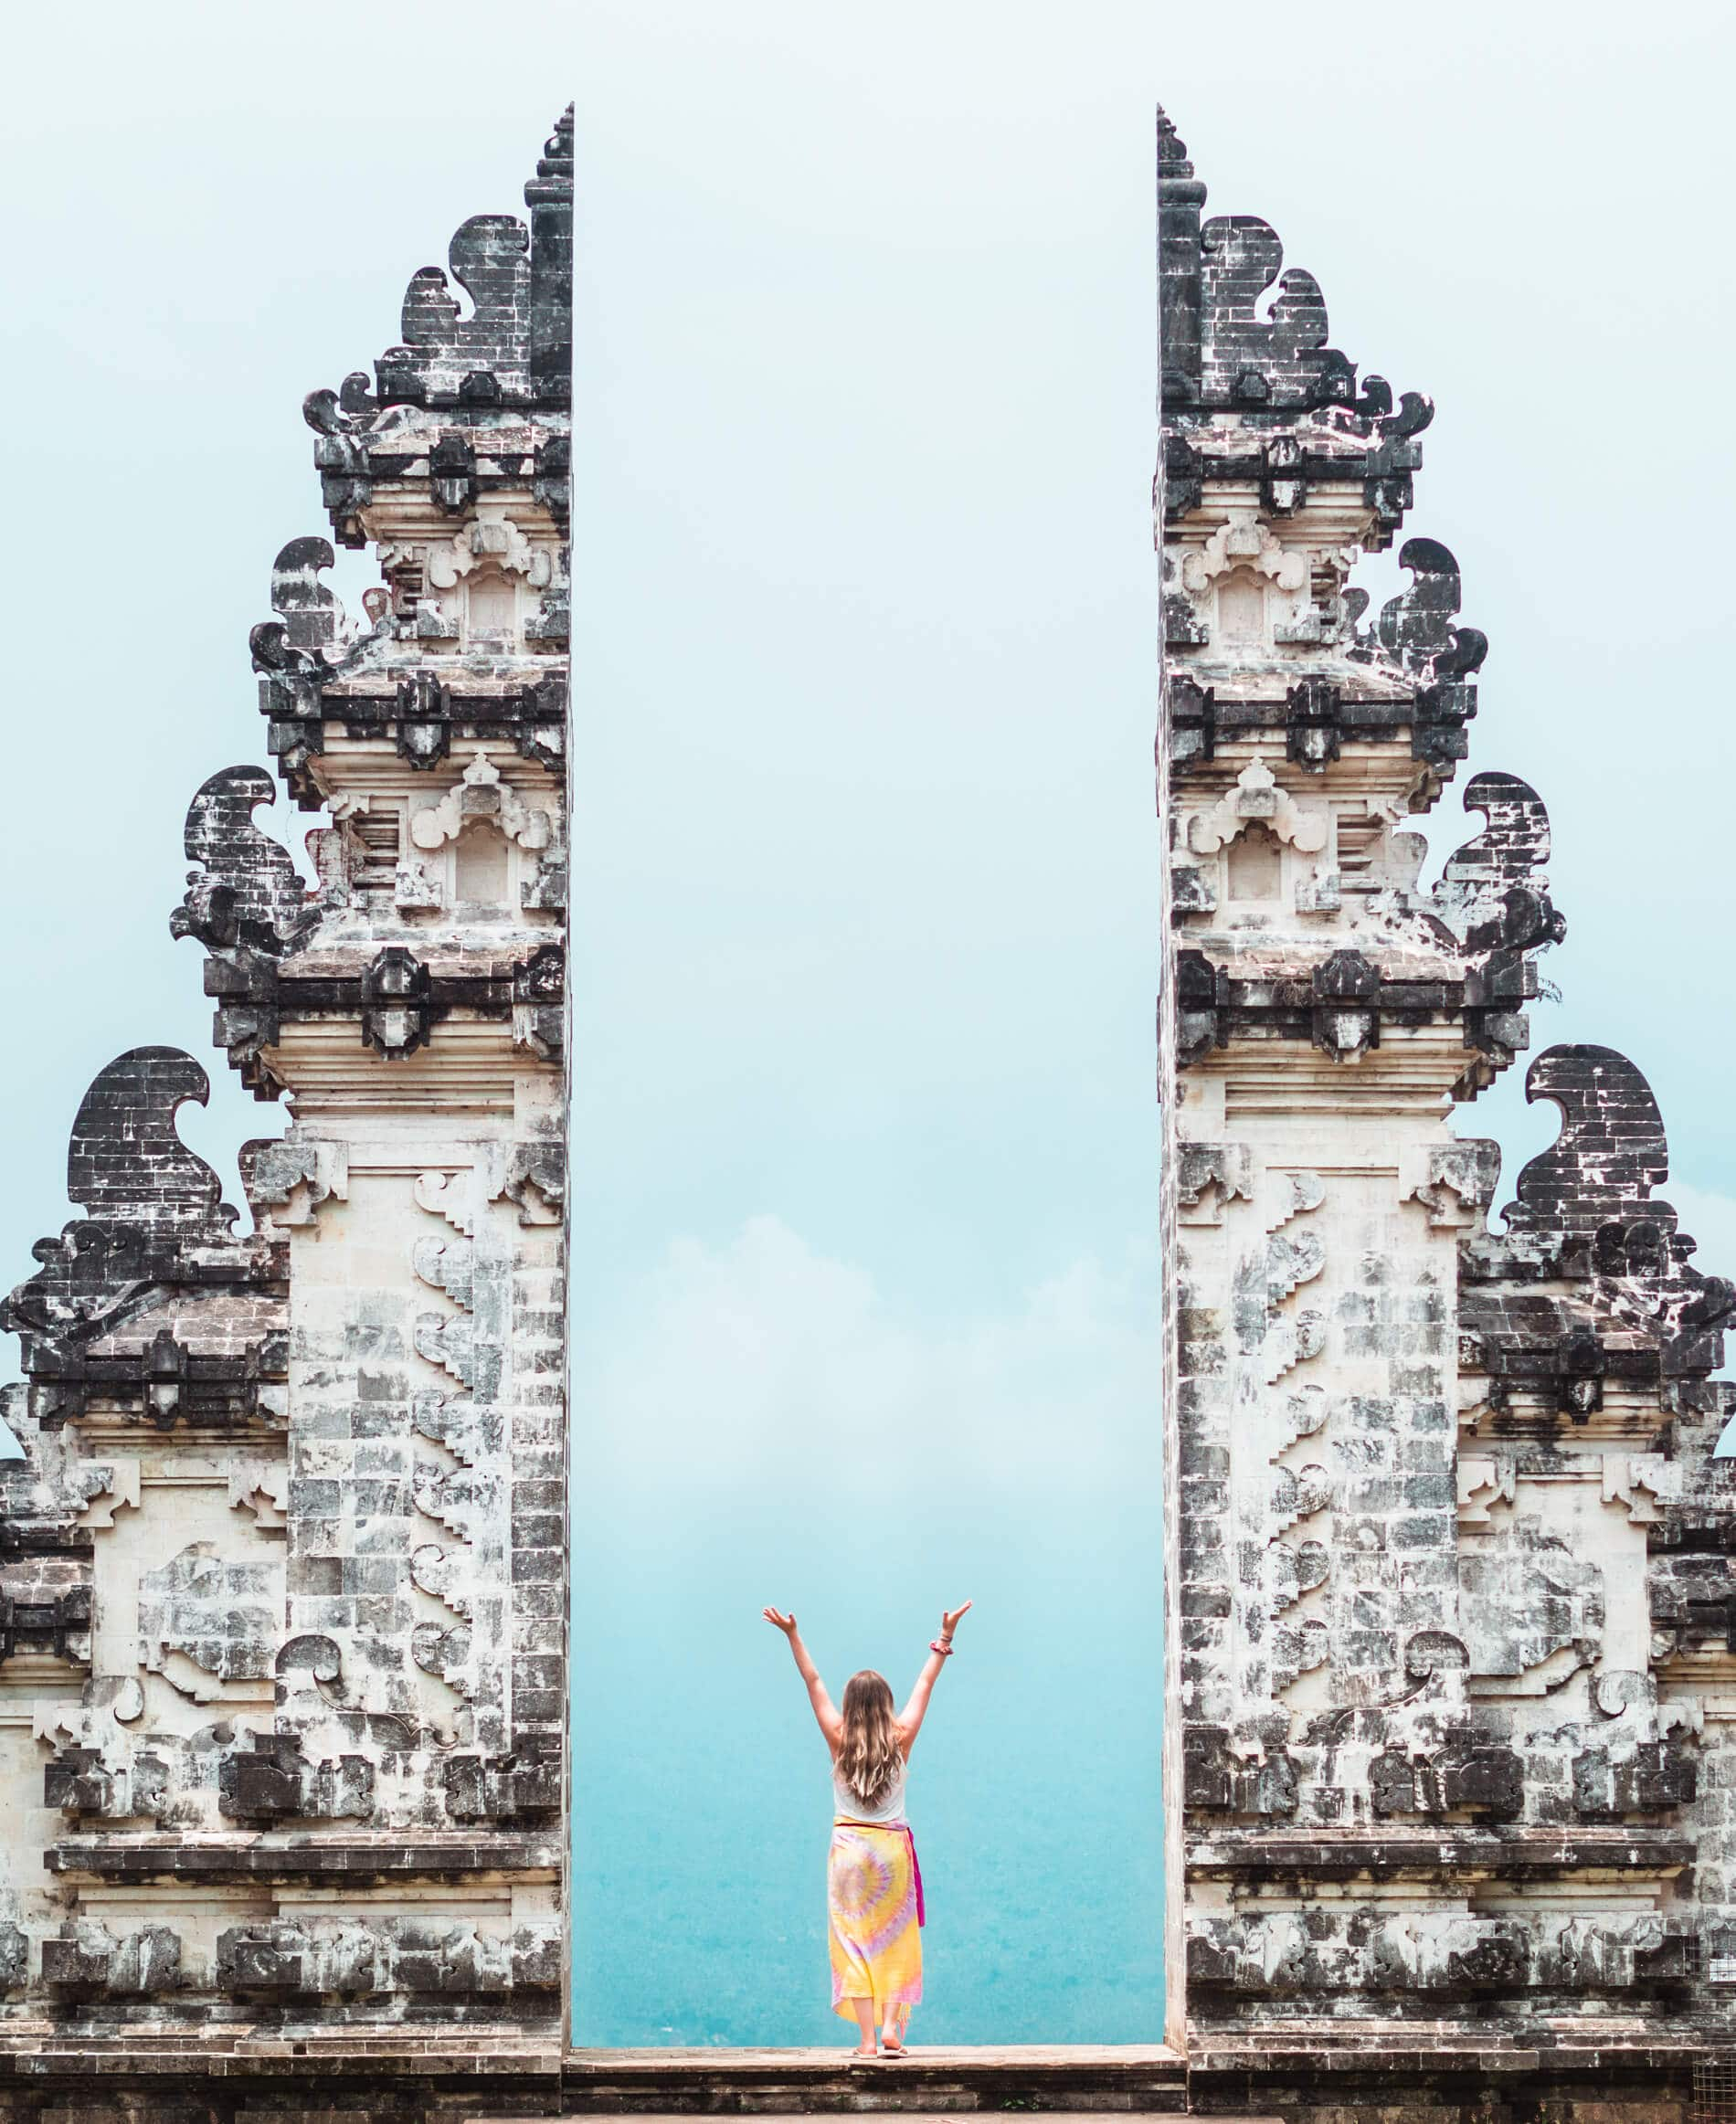 Everything you need to know before visiting Pura Lempuyang Temple in Bali: What to wear, how to get there, what to expect + why I think you should add Bali's most spectacular temple to your bucket list now